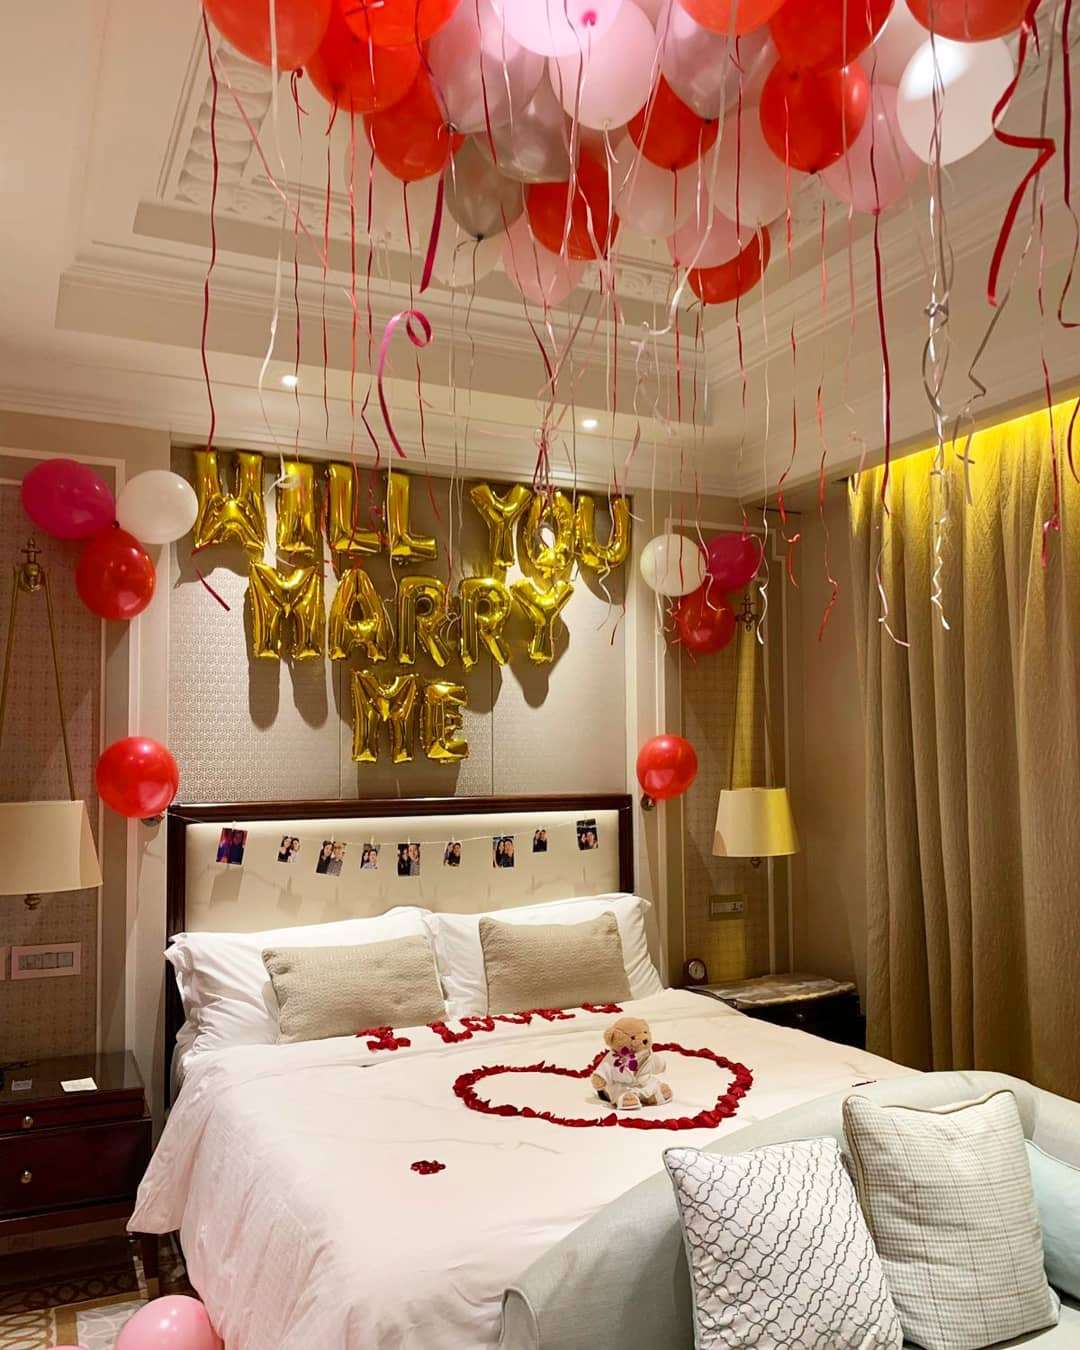 Balloon Decorations for Wedding Proposal